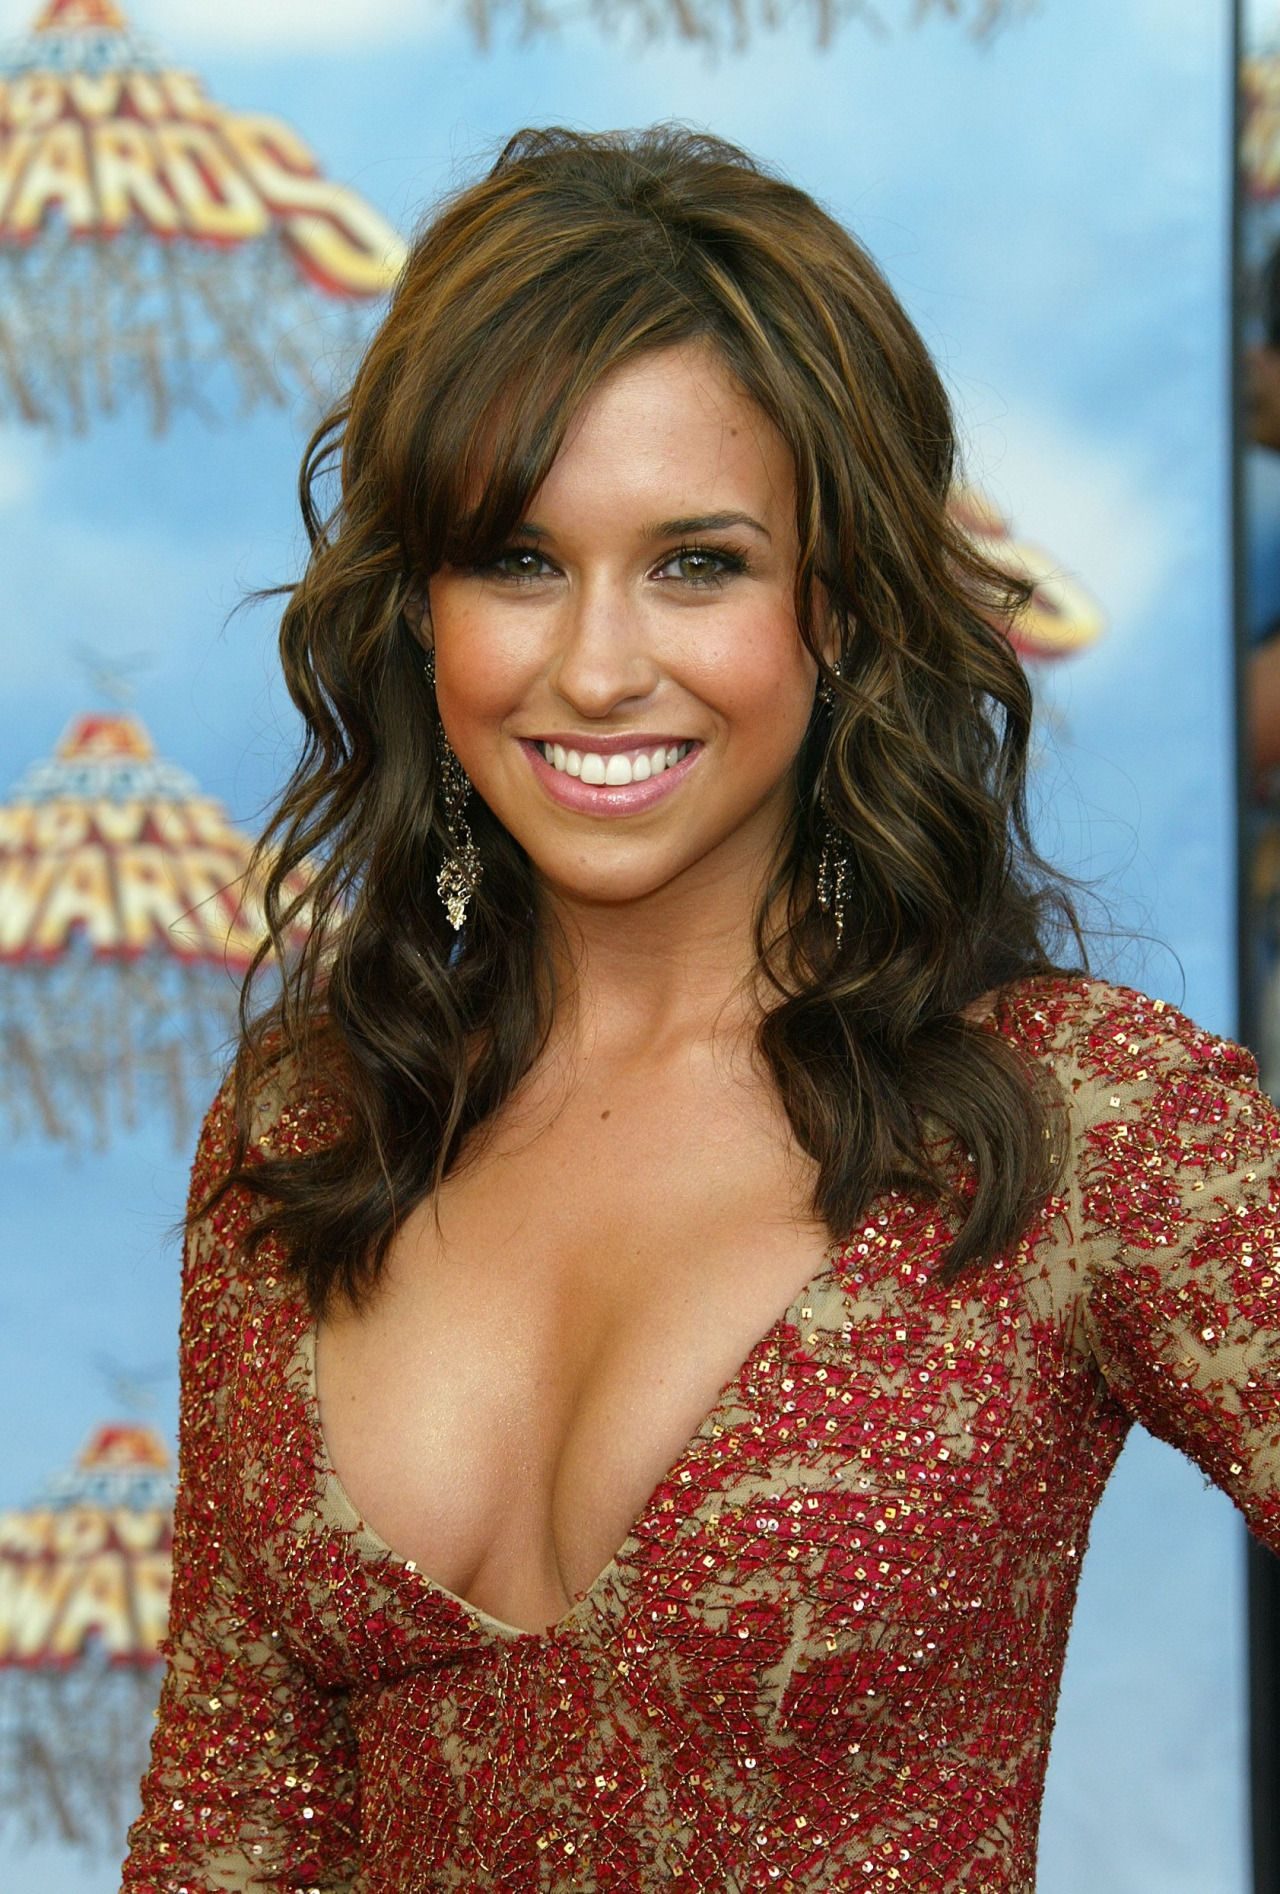 Lacey-Chabert-hot-cleavage-pic